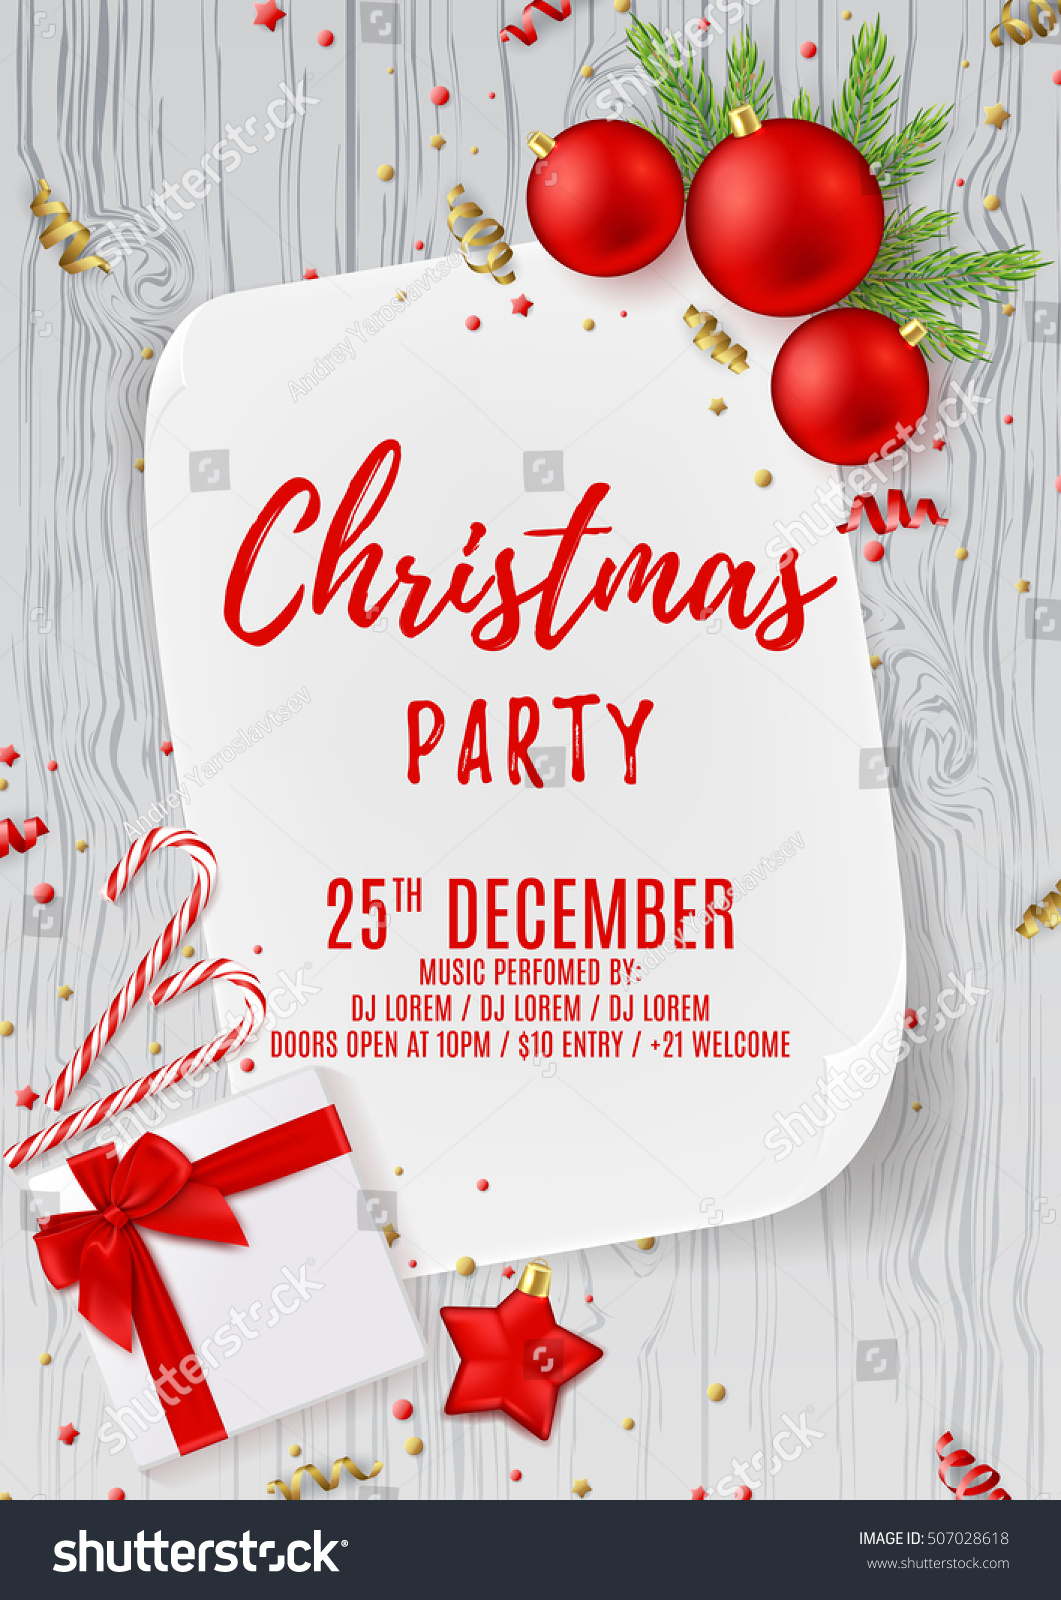 Merry Christmas Party Flyer Top View Stock Vector ...